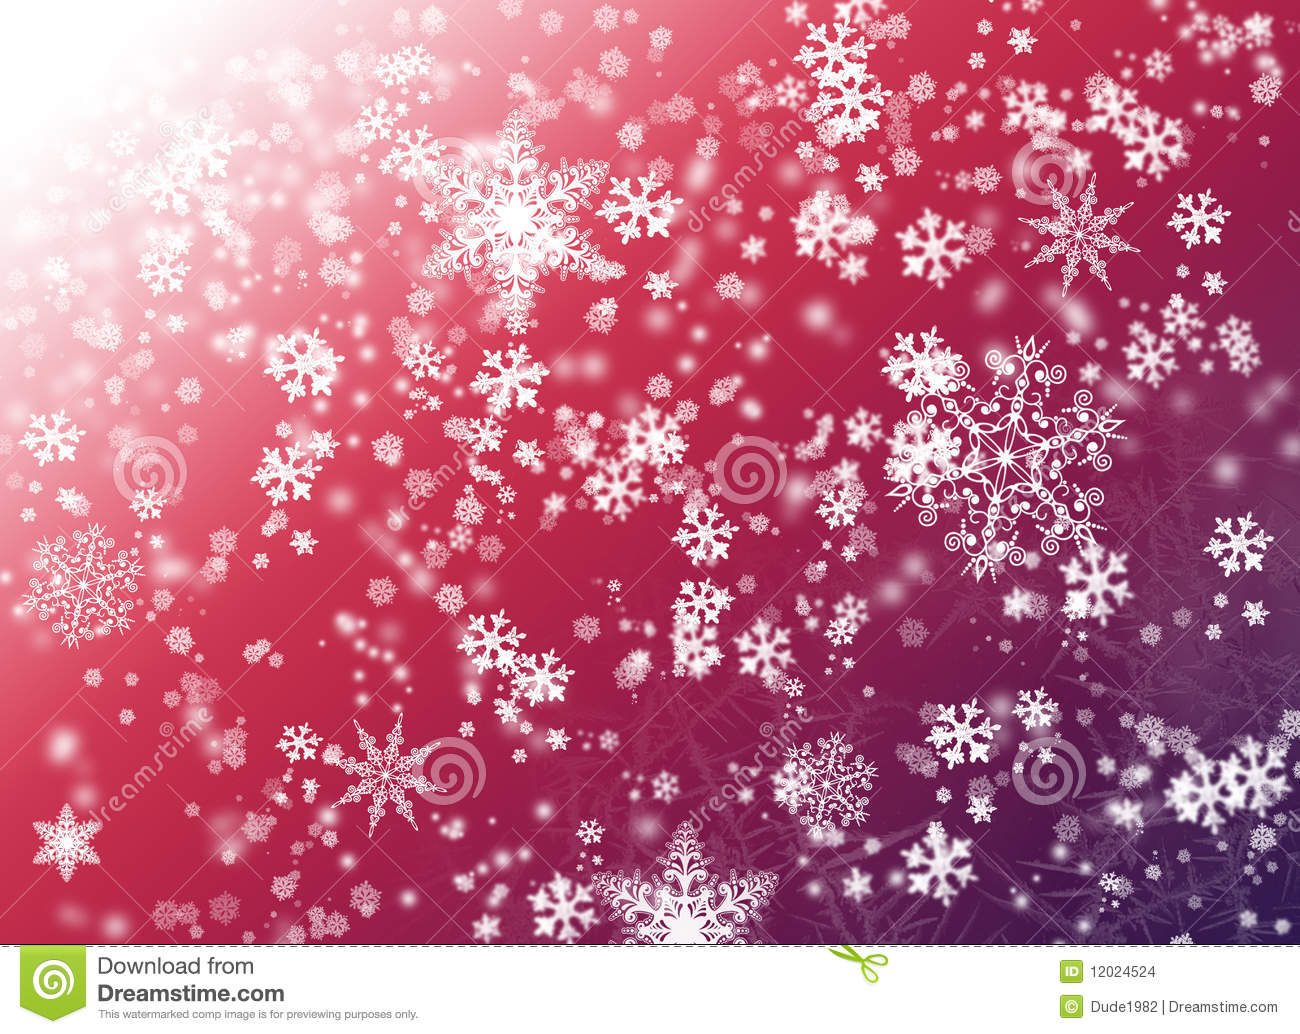 Snow Falling Background Wallpaper Pink Background With Snowflake Stock Illustration Image